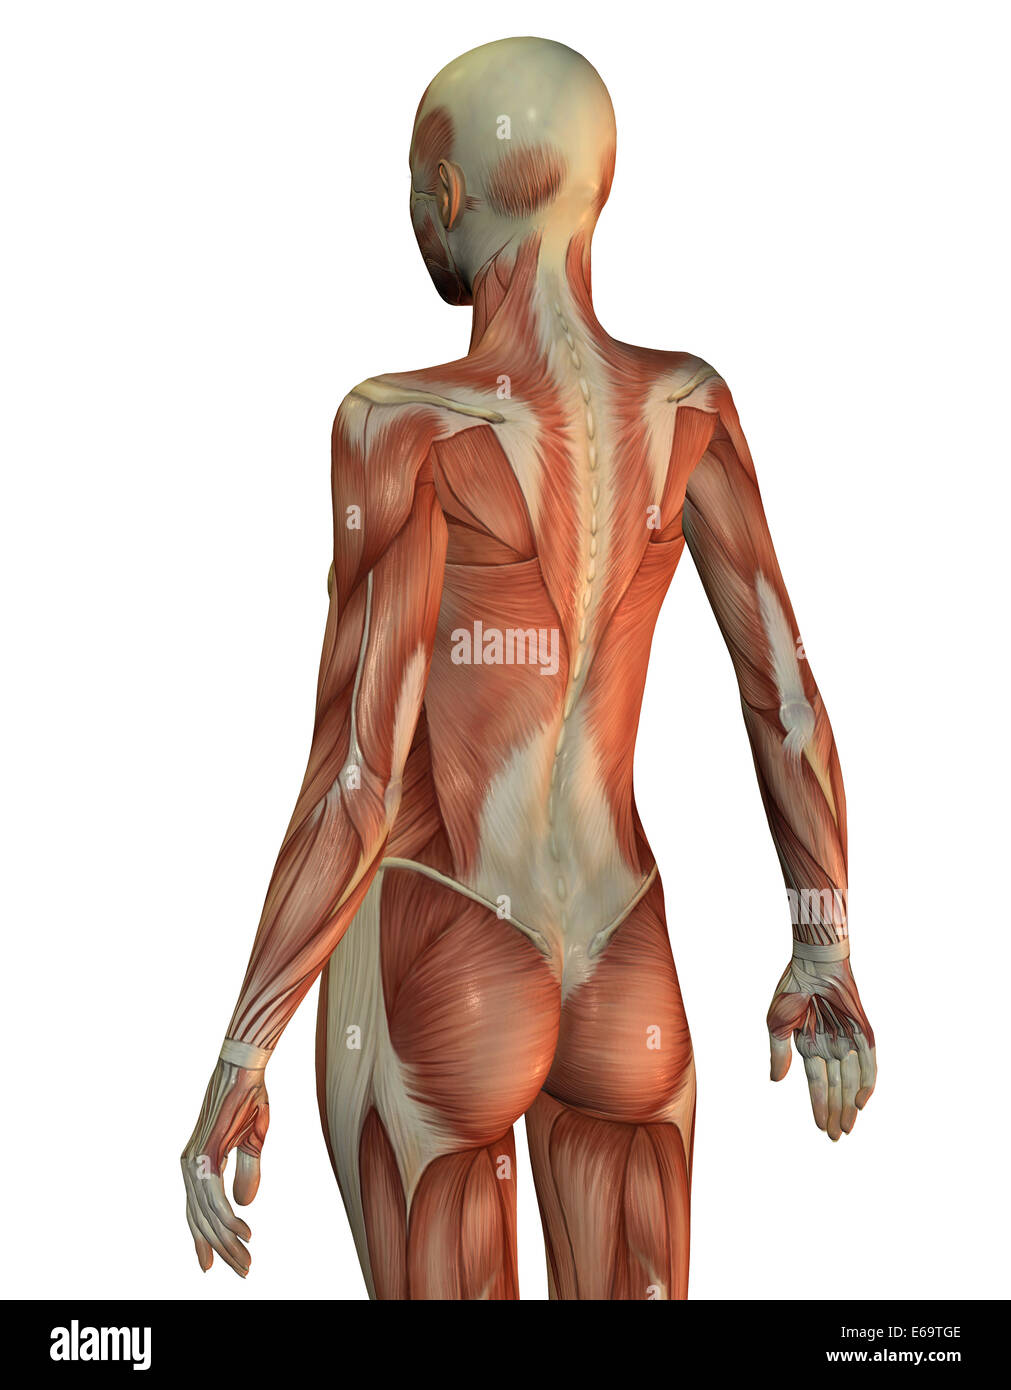 anatomy,muscle,medical illustrations - Stock Image